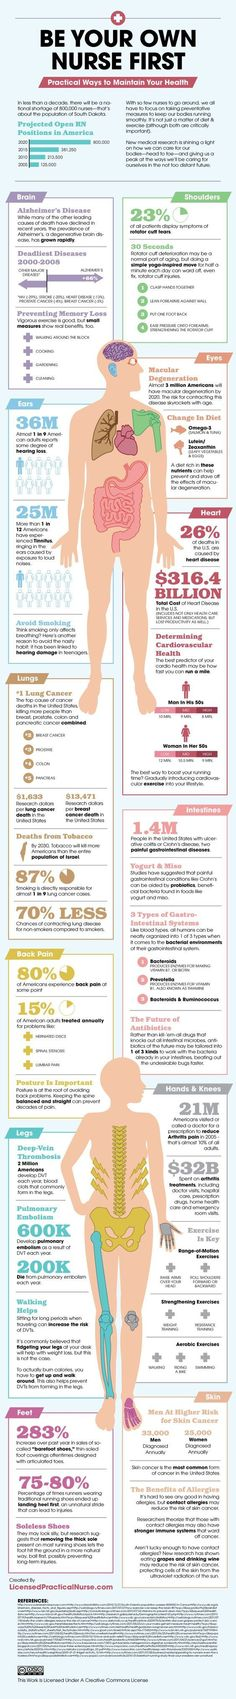 be your own nurse how to stay healthy infographic